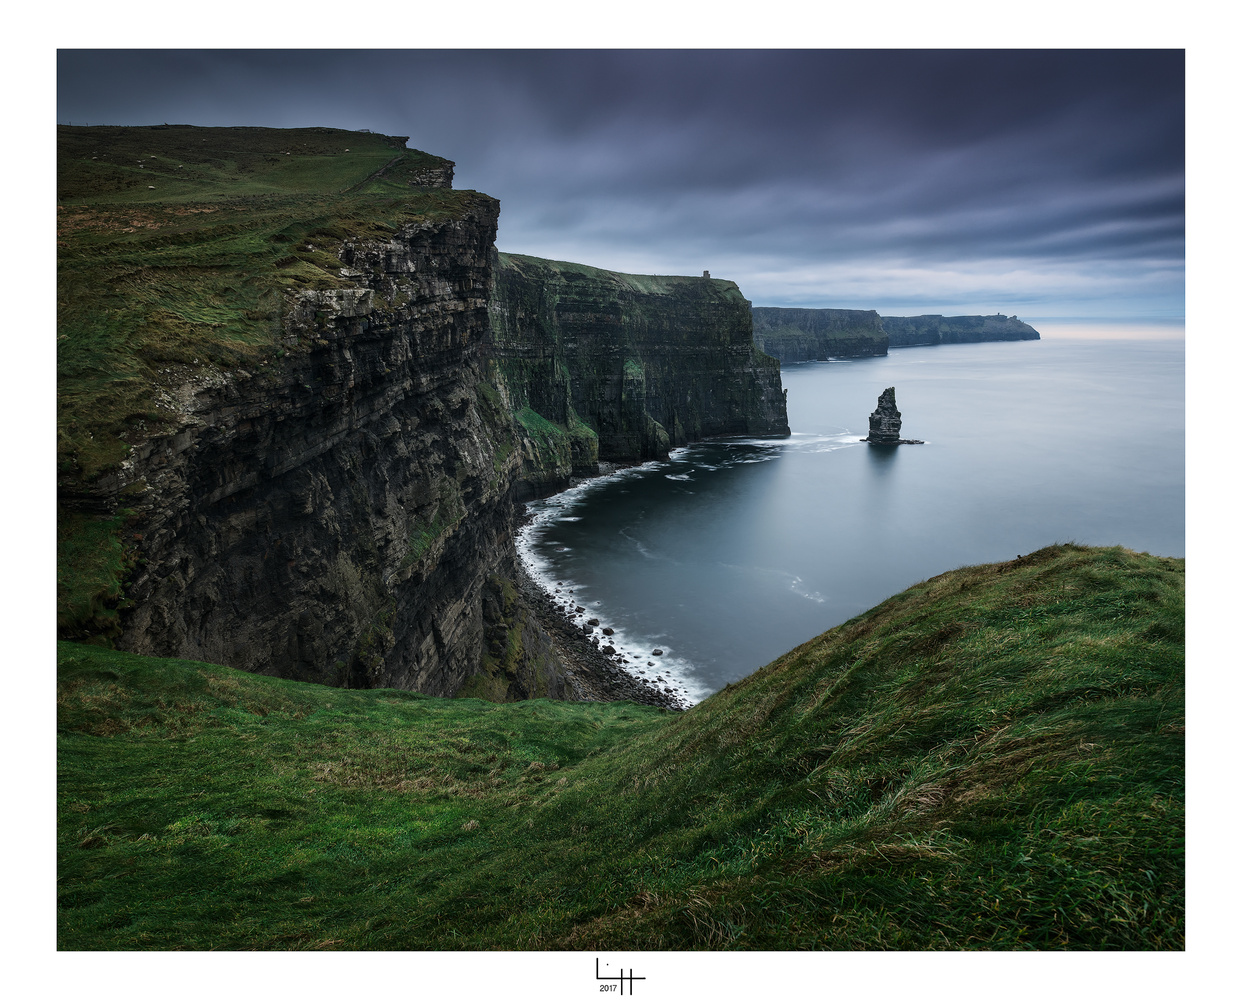 Cliffs of Moher by Lionel HUG